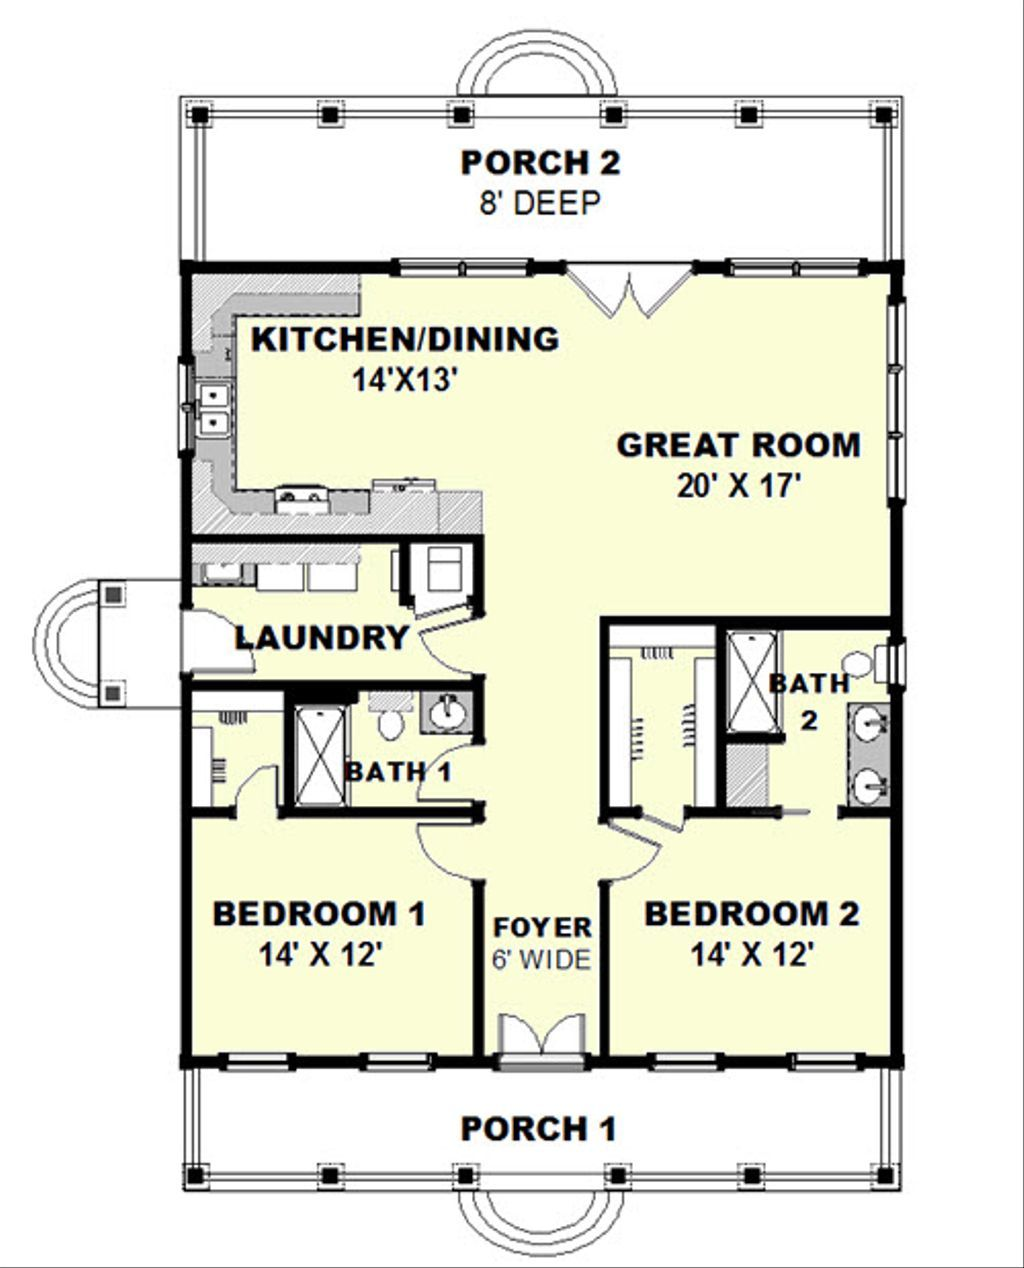 Cottage Style House Plan 2 Beds 2 Baths 1292 Sq Ft Plan 44 165 Cottage House Plans Cottage Floor Plans Cottage Style House Plans